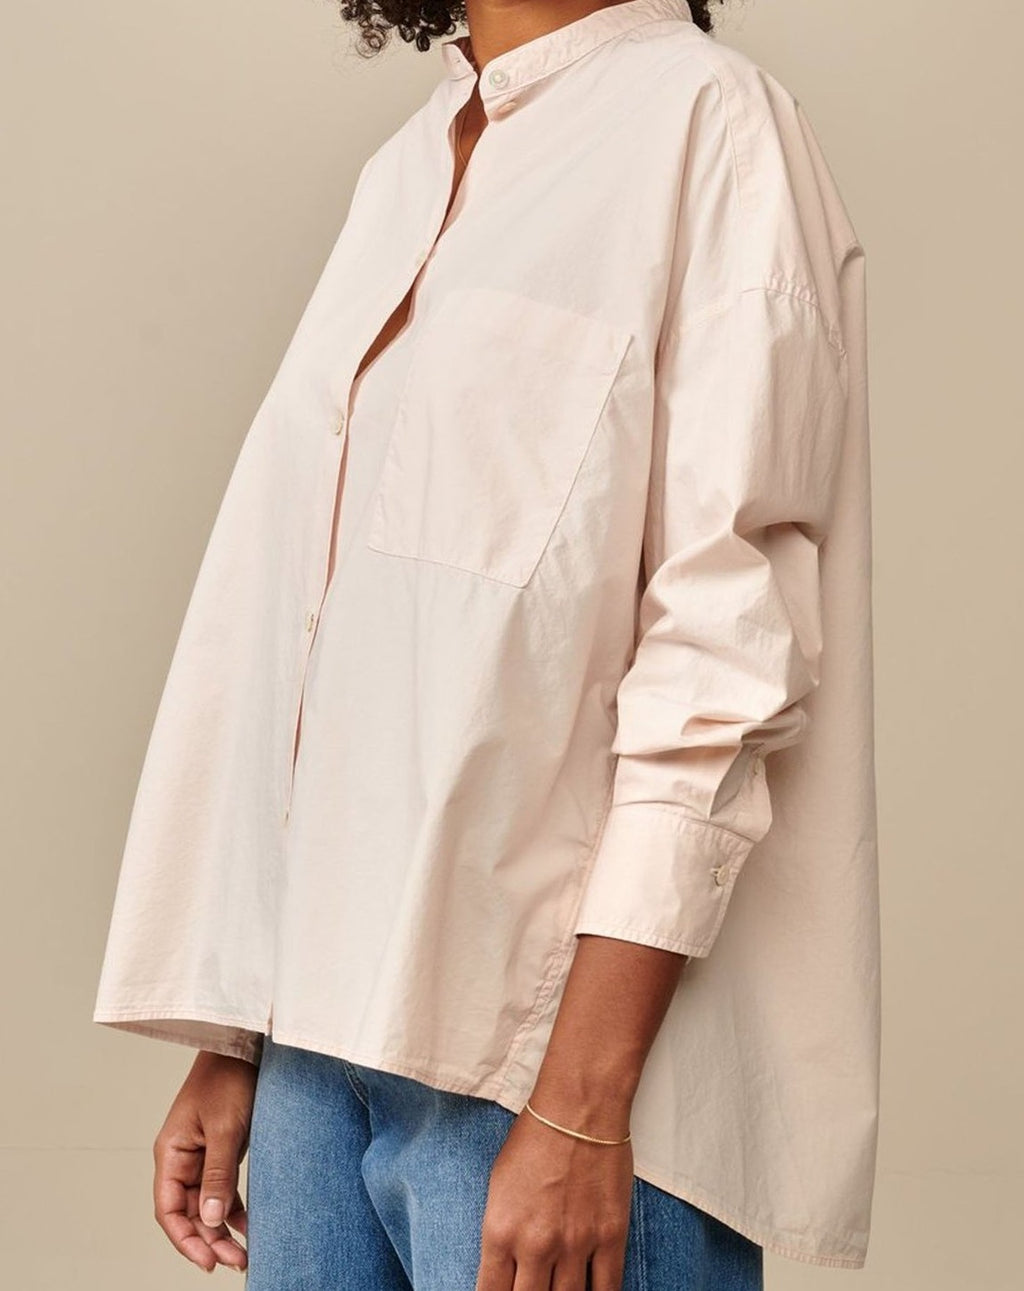 Classic and oversized. The Gorky is the key to a modern and minimalist look. Dropped shoulders, patch front pocket, curved hem longer in the back. This blush pink version will brighten up a classic outfit. Wear it loose over a pair of skinny jeans or play with its volume and tuck it inside any high waist garment you own.